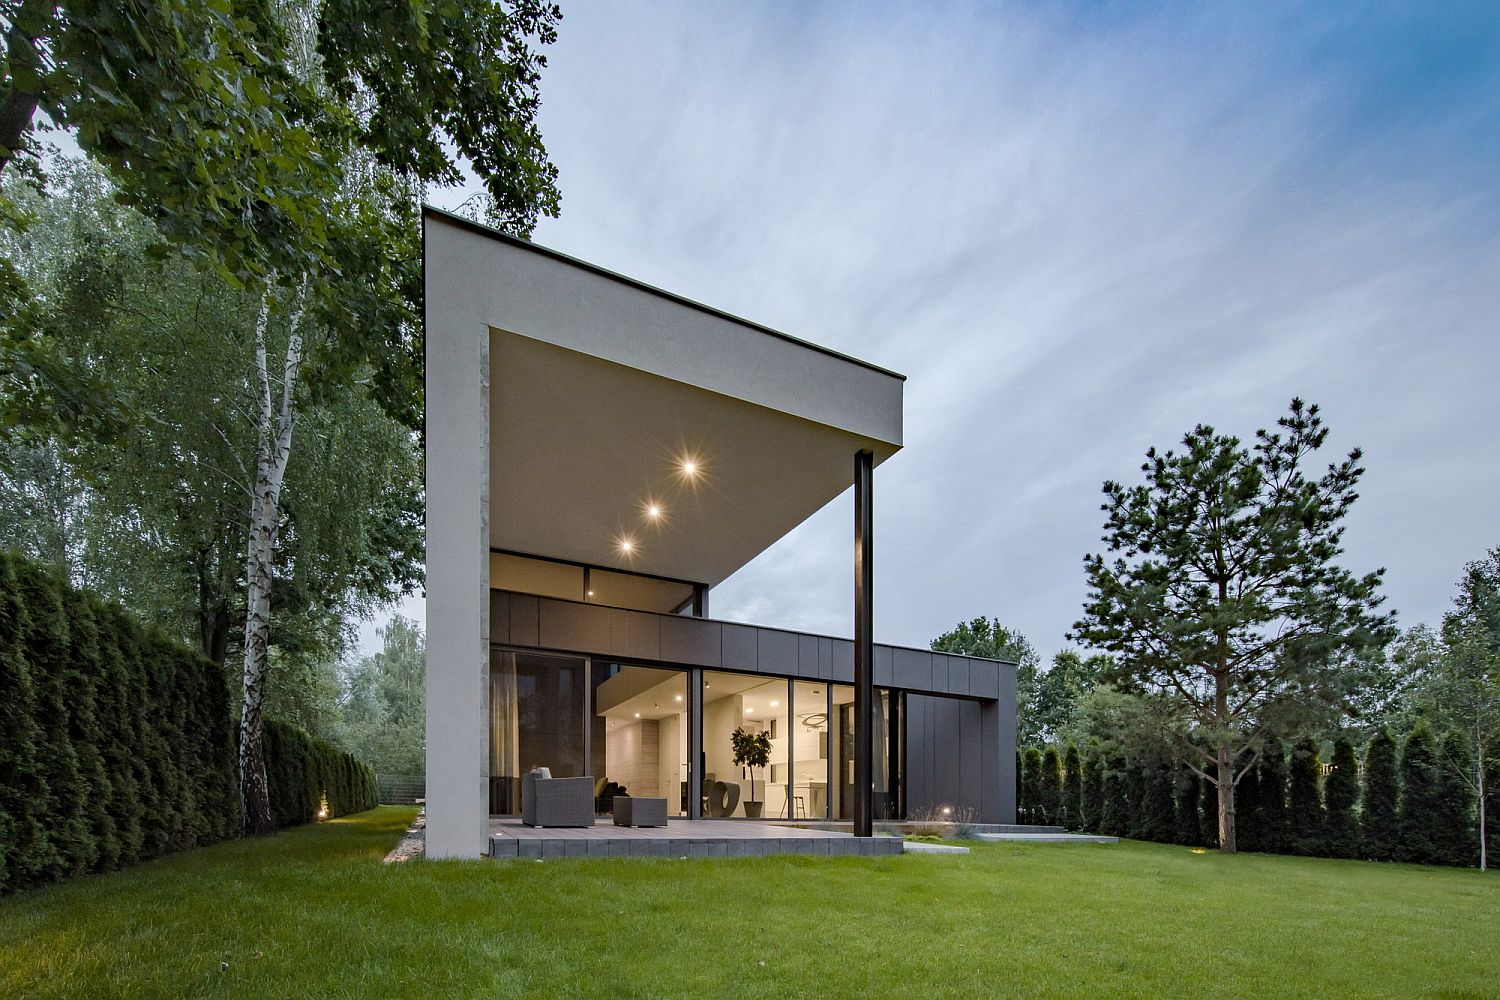 Gray-and-elegant-exterior-of-the-home-along-with-a-lovely-garden